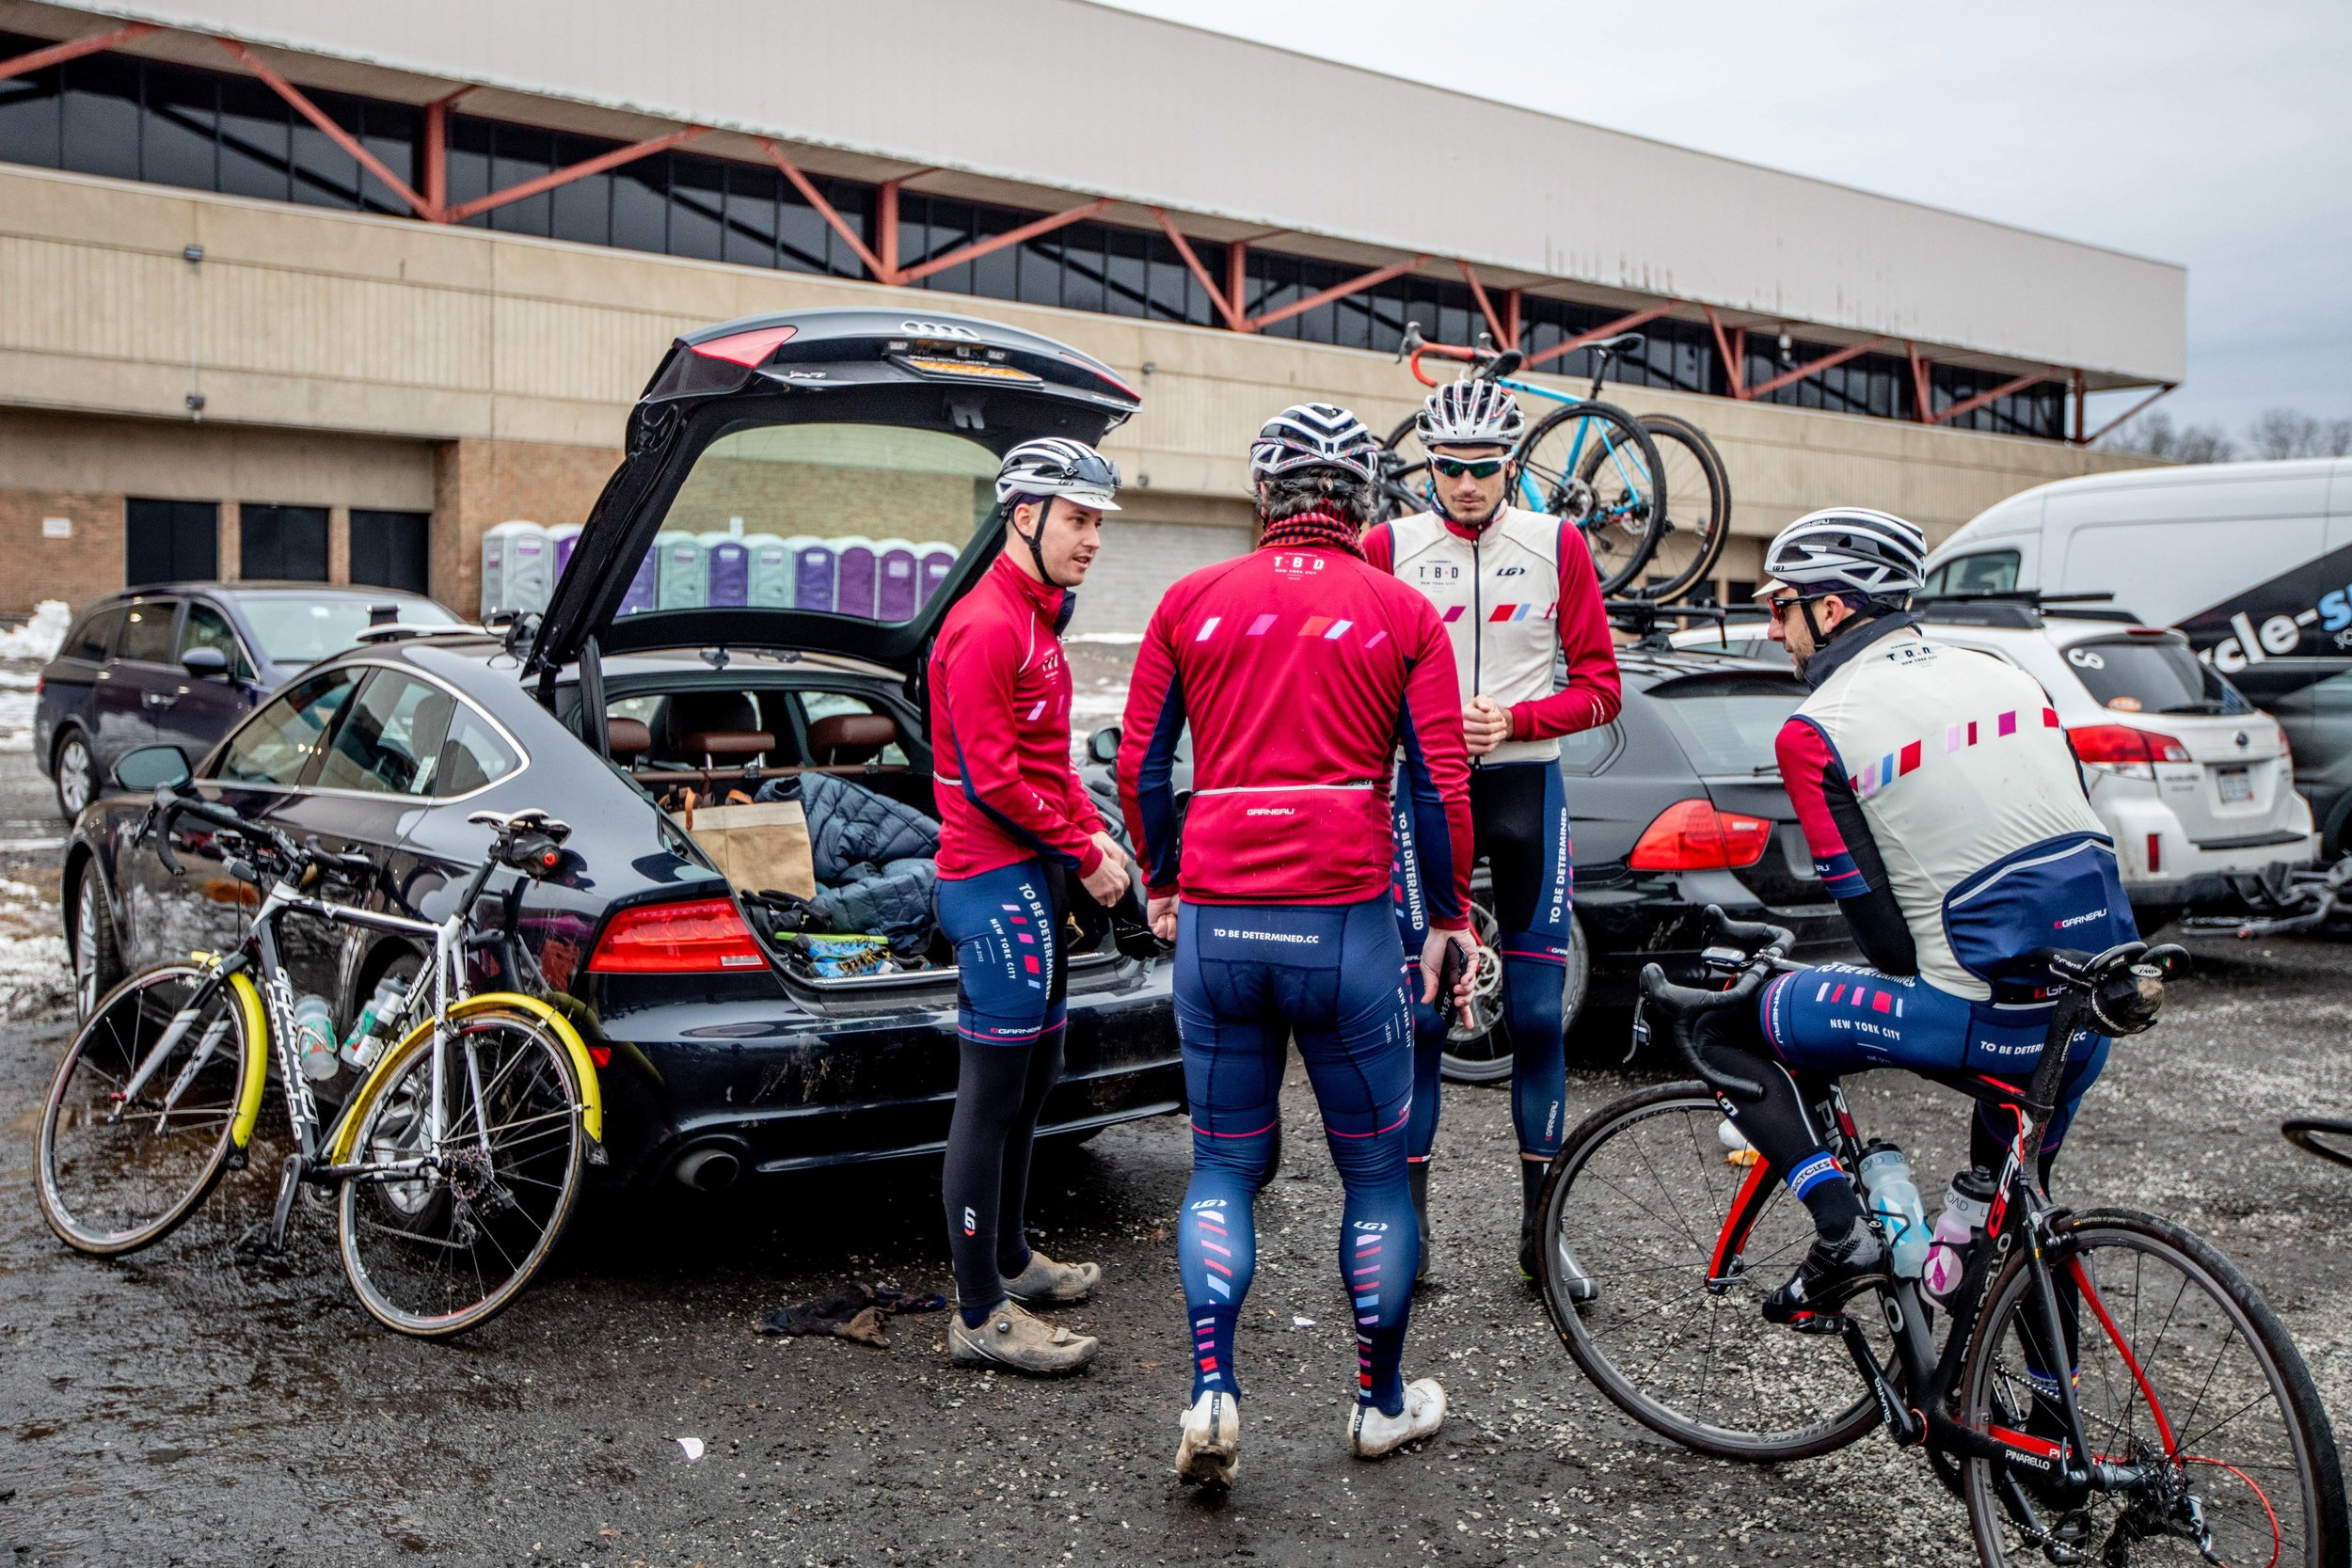 While only a portion of the team suited up to race on Sunday, many more rode out to the venue from Manhattan to spectate. Photo by Daghan Perker